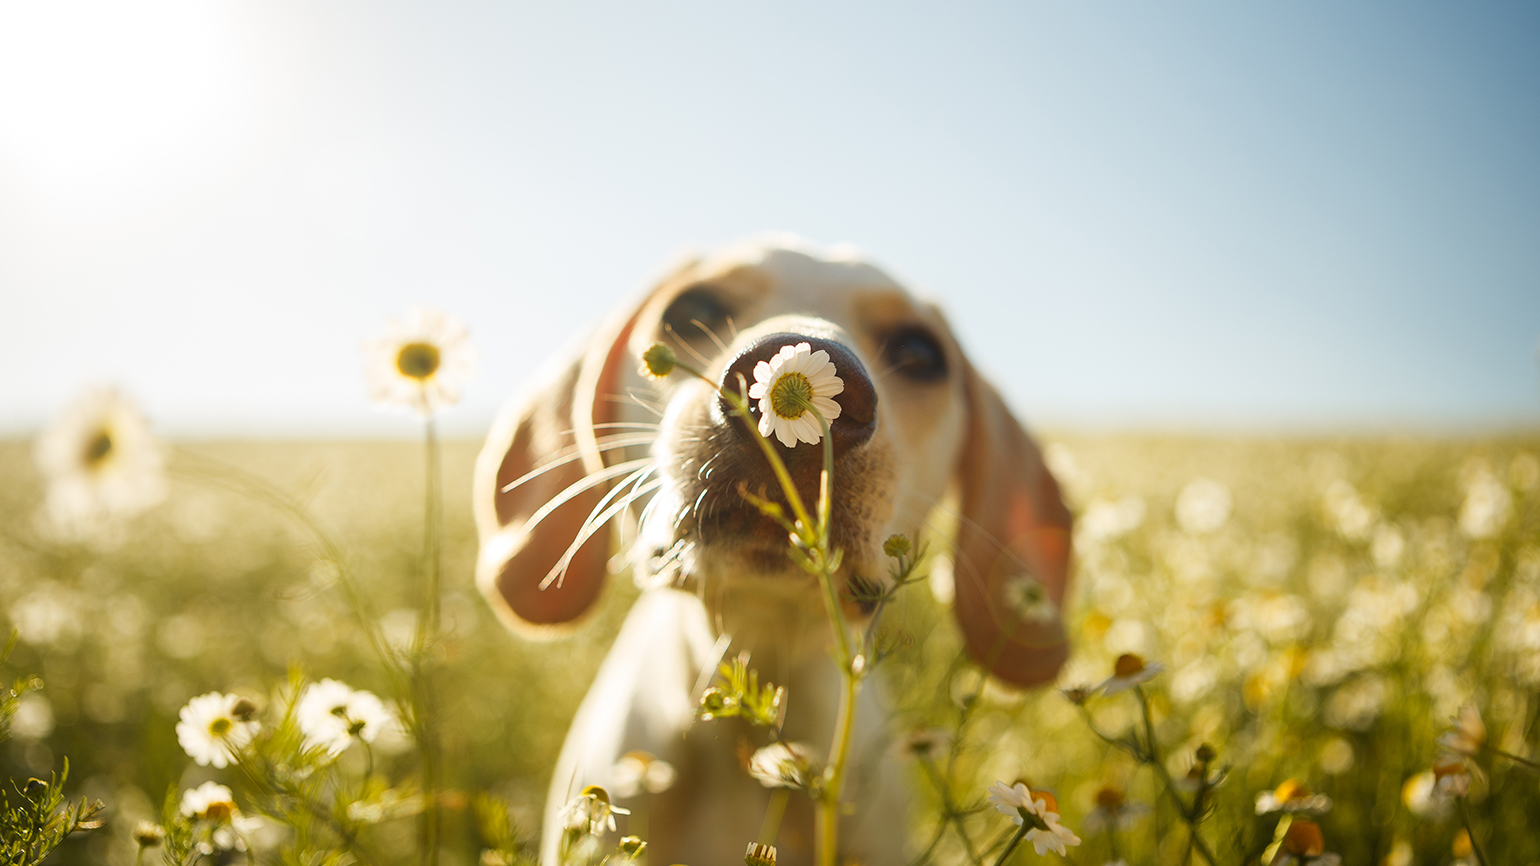 A dog sniffs a wildflower in a field